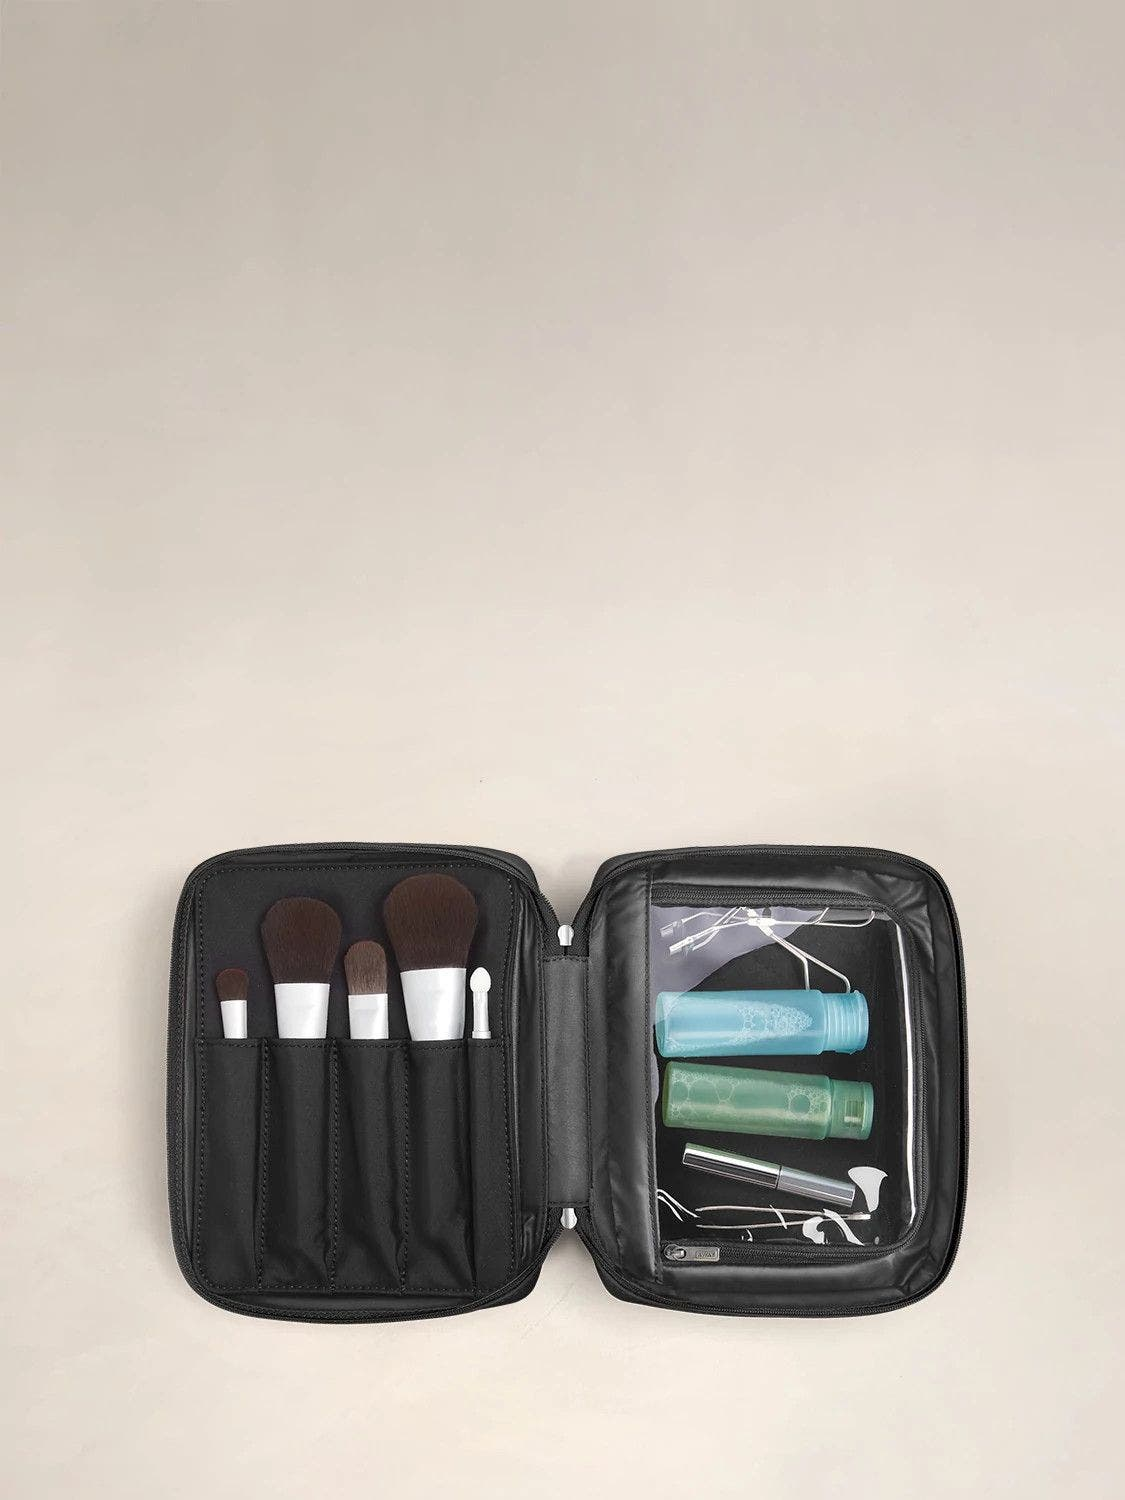 Open view of an Away black Cosmetics Bag in Nylon, with makeup brushes and travel sized toiletry items inside